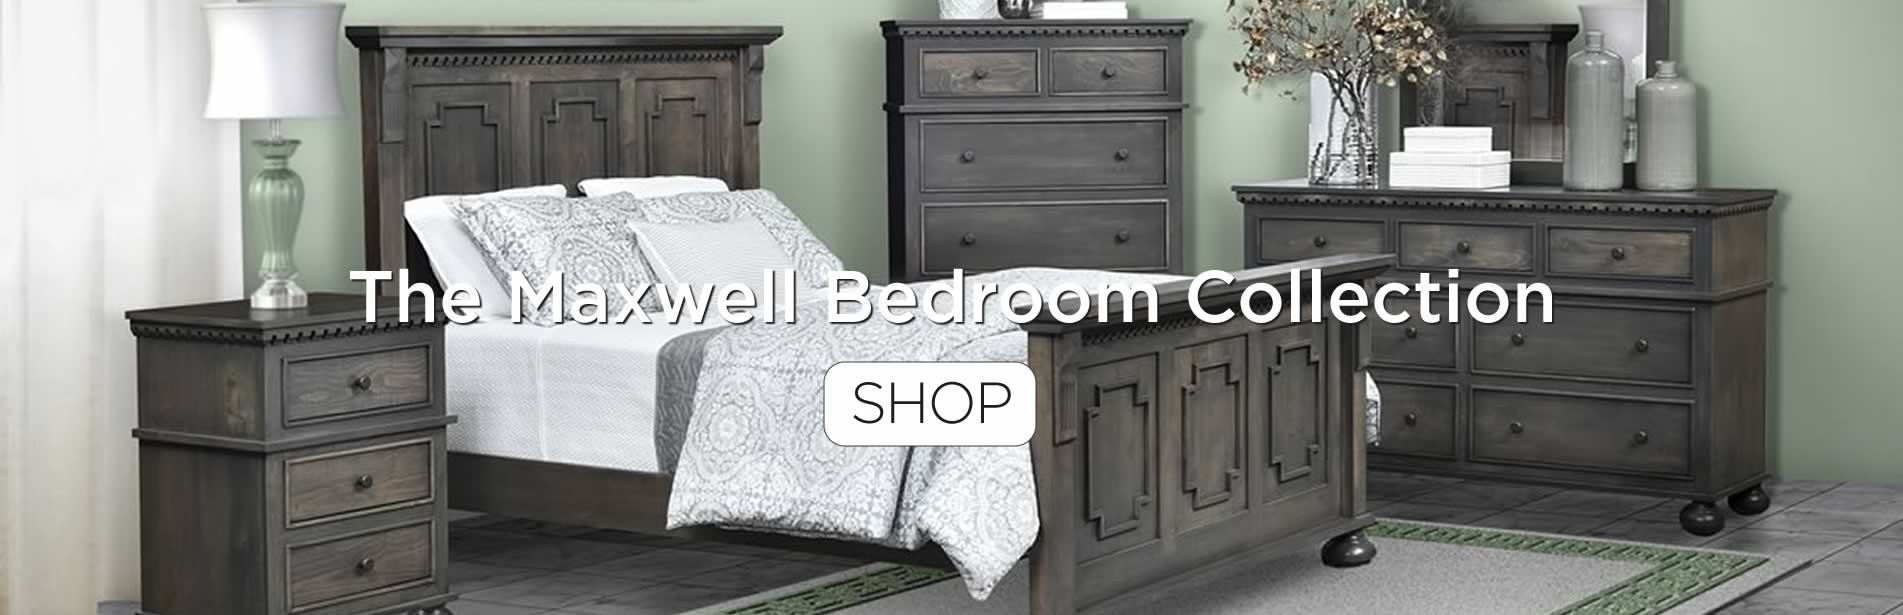 The Maxwell bedroom collection.